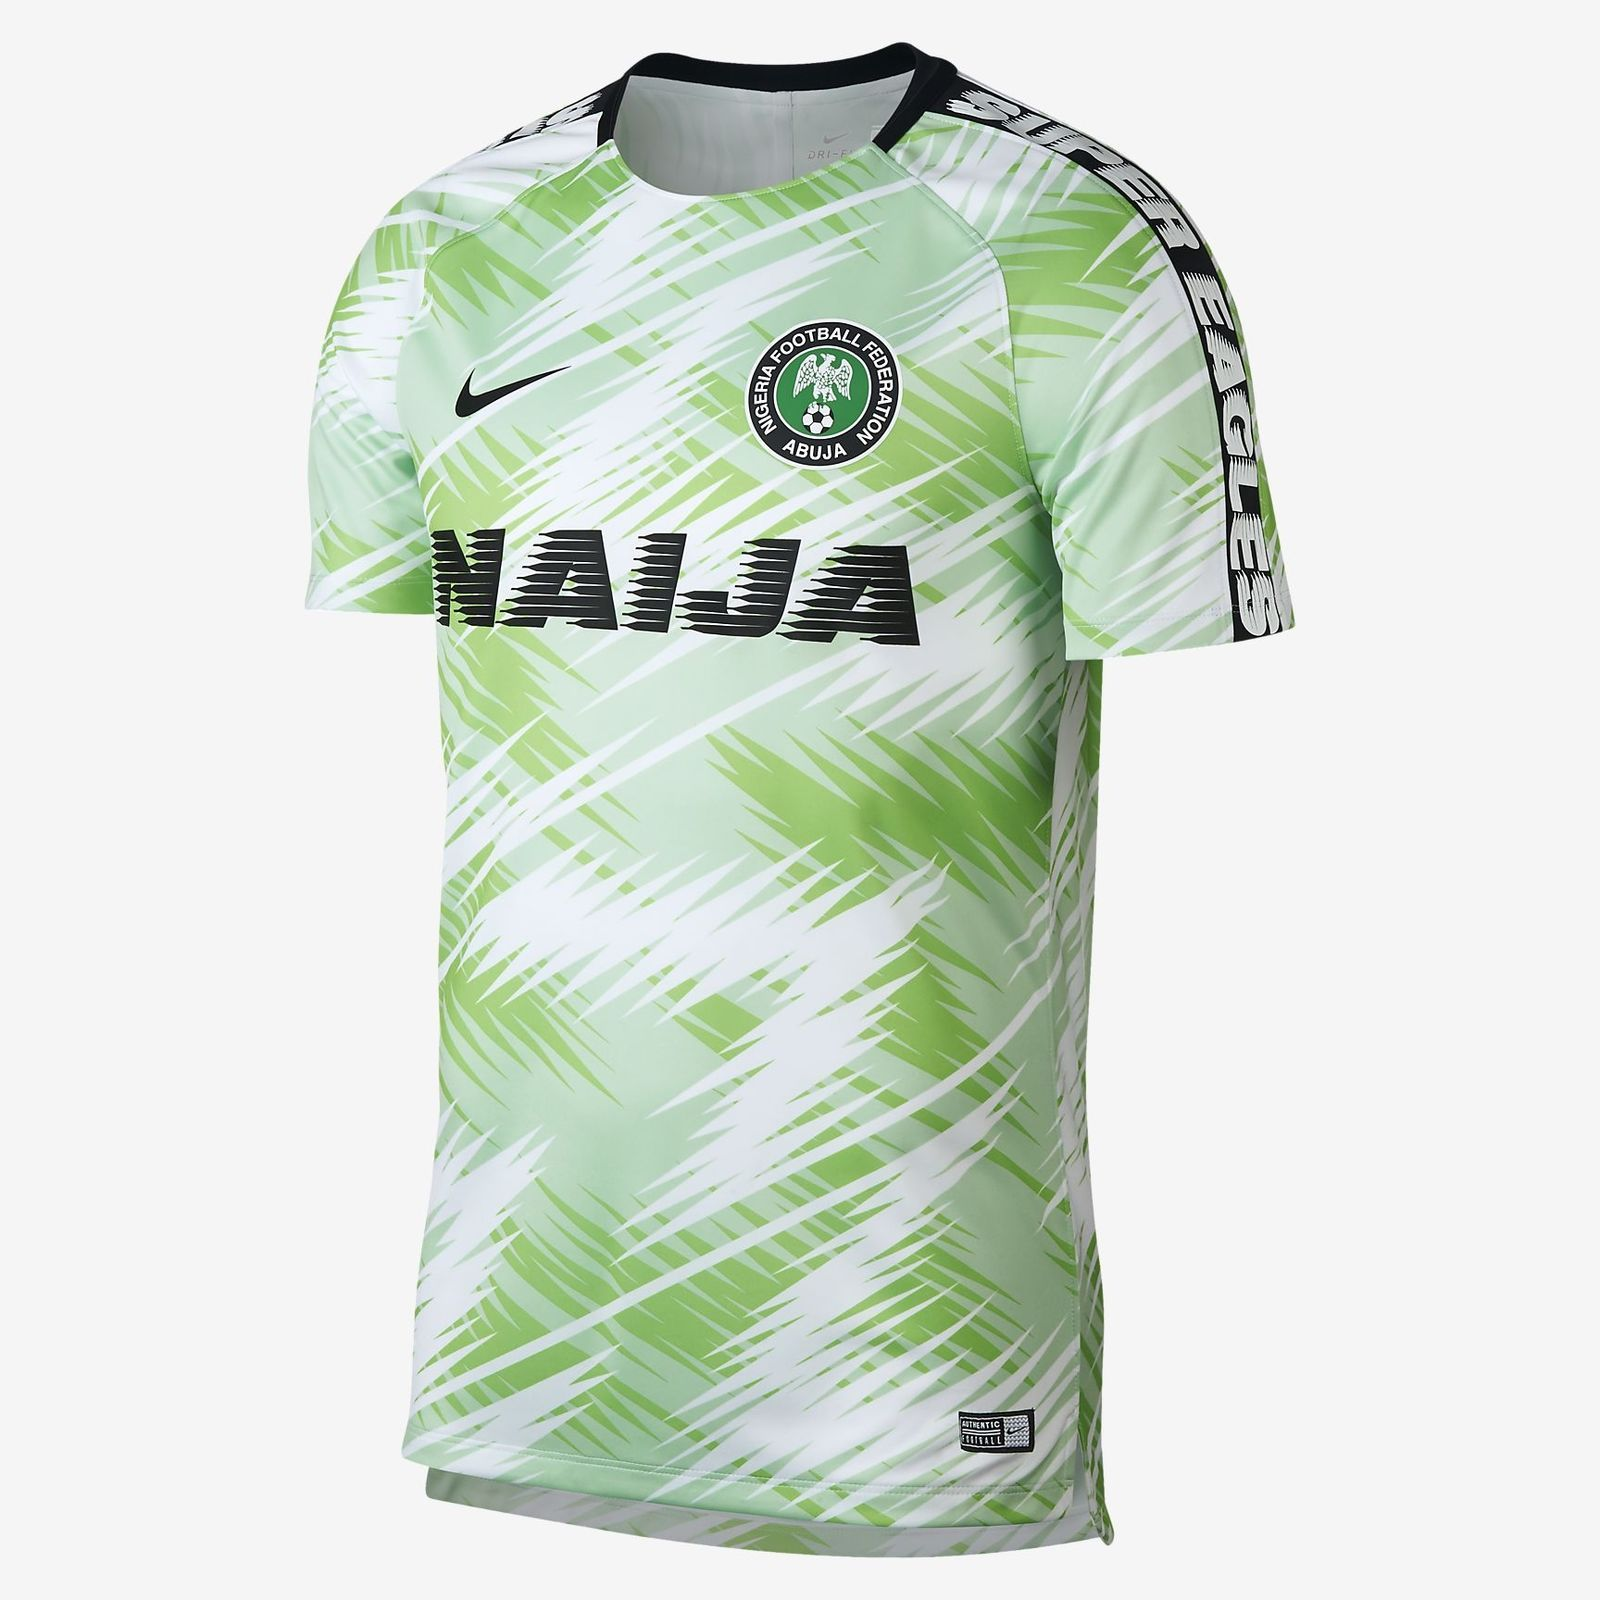 2018 Nike Nigeria Dri-FIT Squad Men Top Soccer Jersey Small 893364-100  WORLD CUP Discount Price 139.99 Free Shipping Buy it Now 4f56633ee